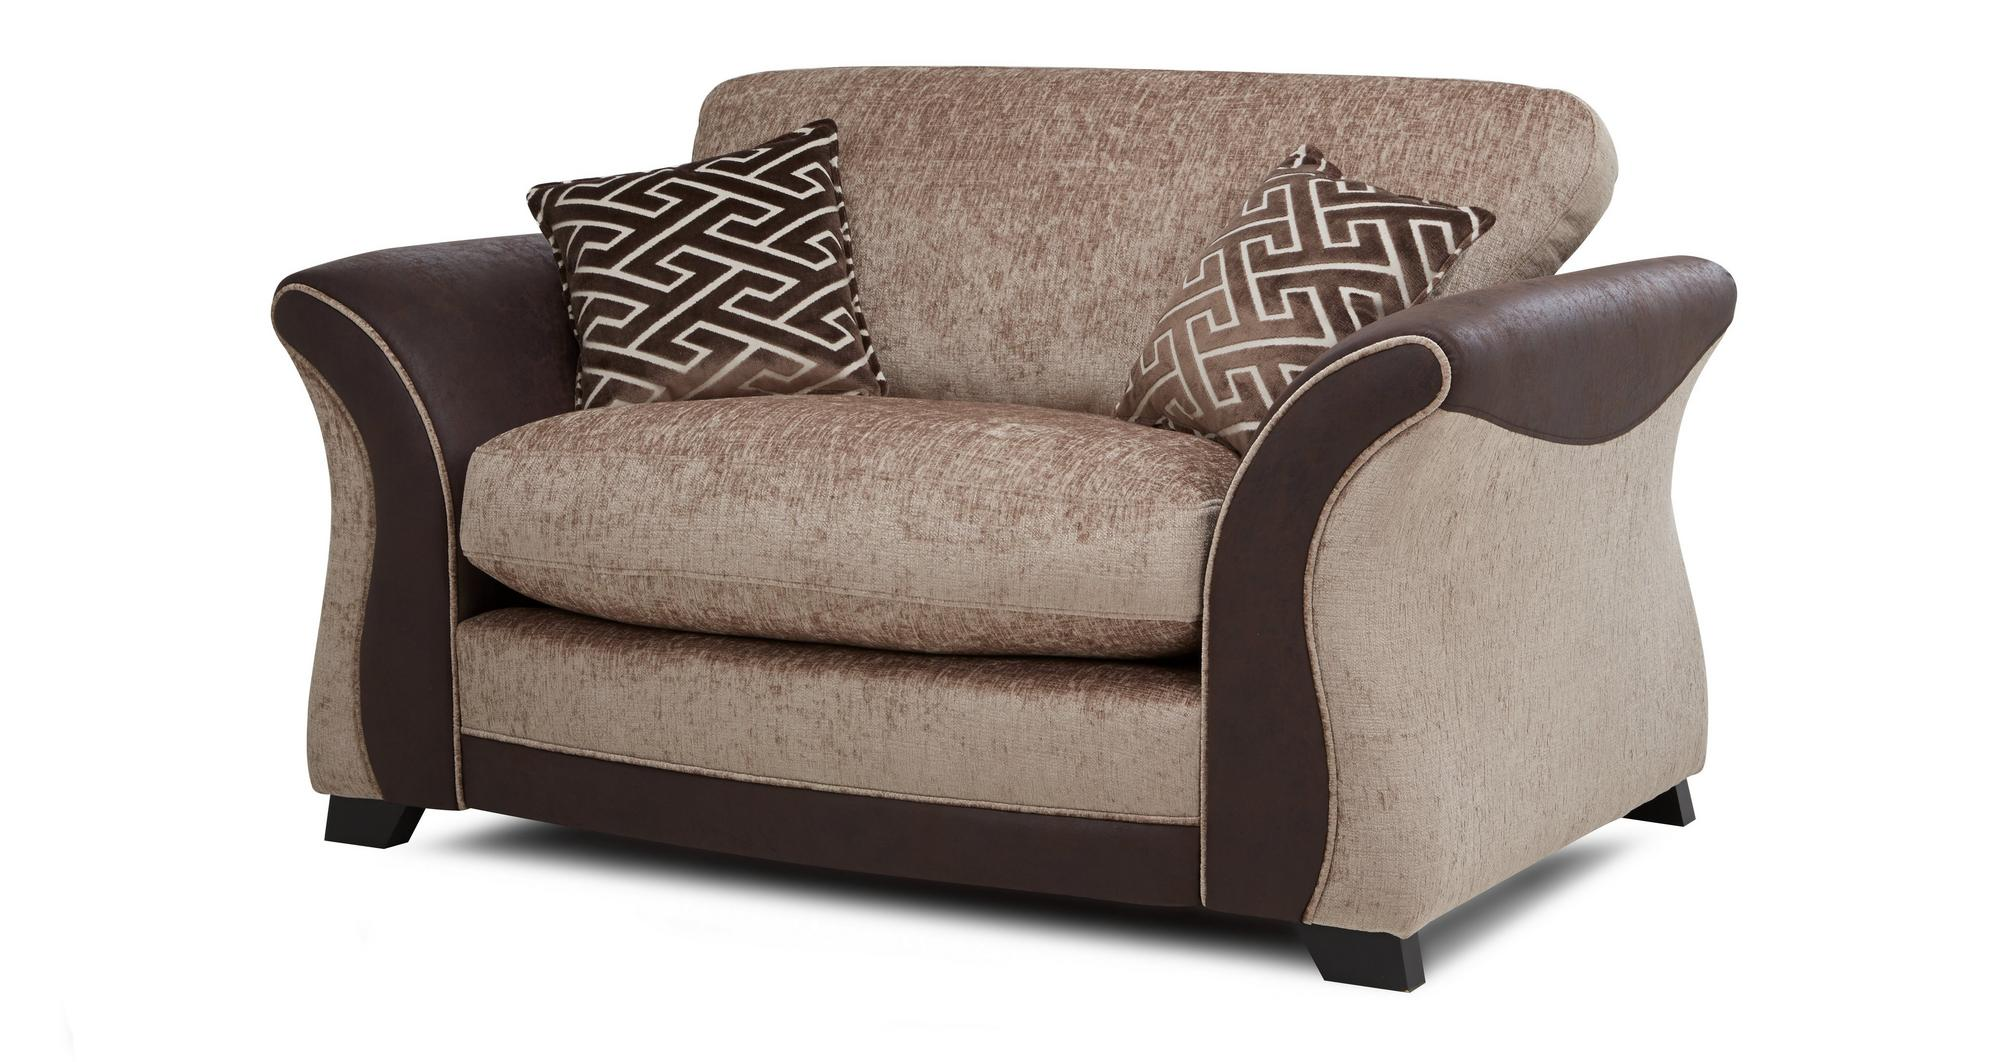 Dfs Merida Mink Brown Fabric 4 Seater Formal Back Sofa